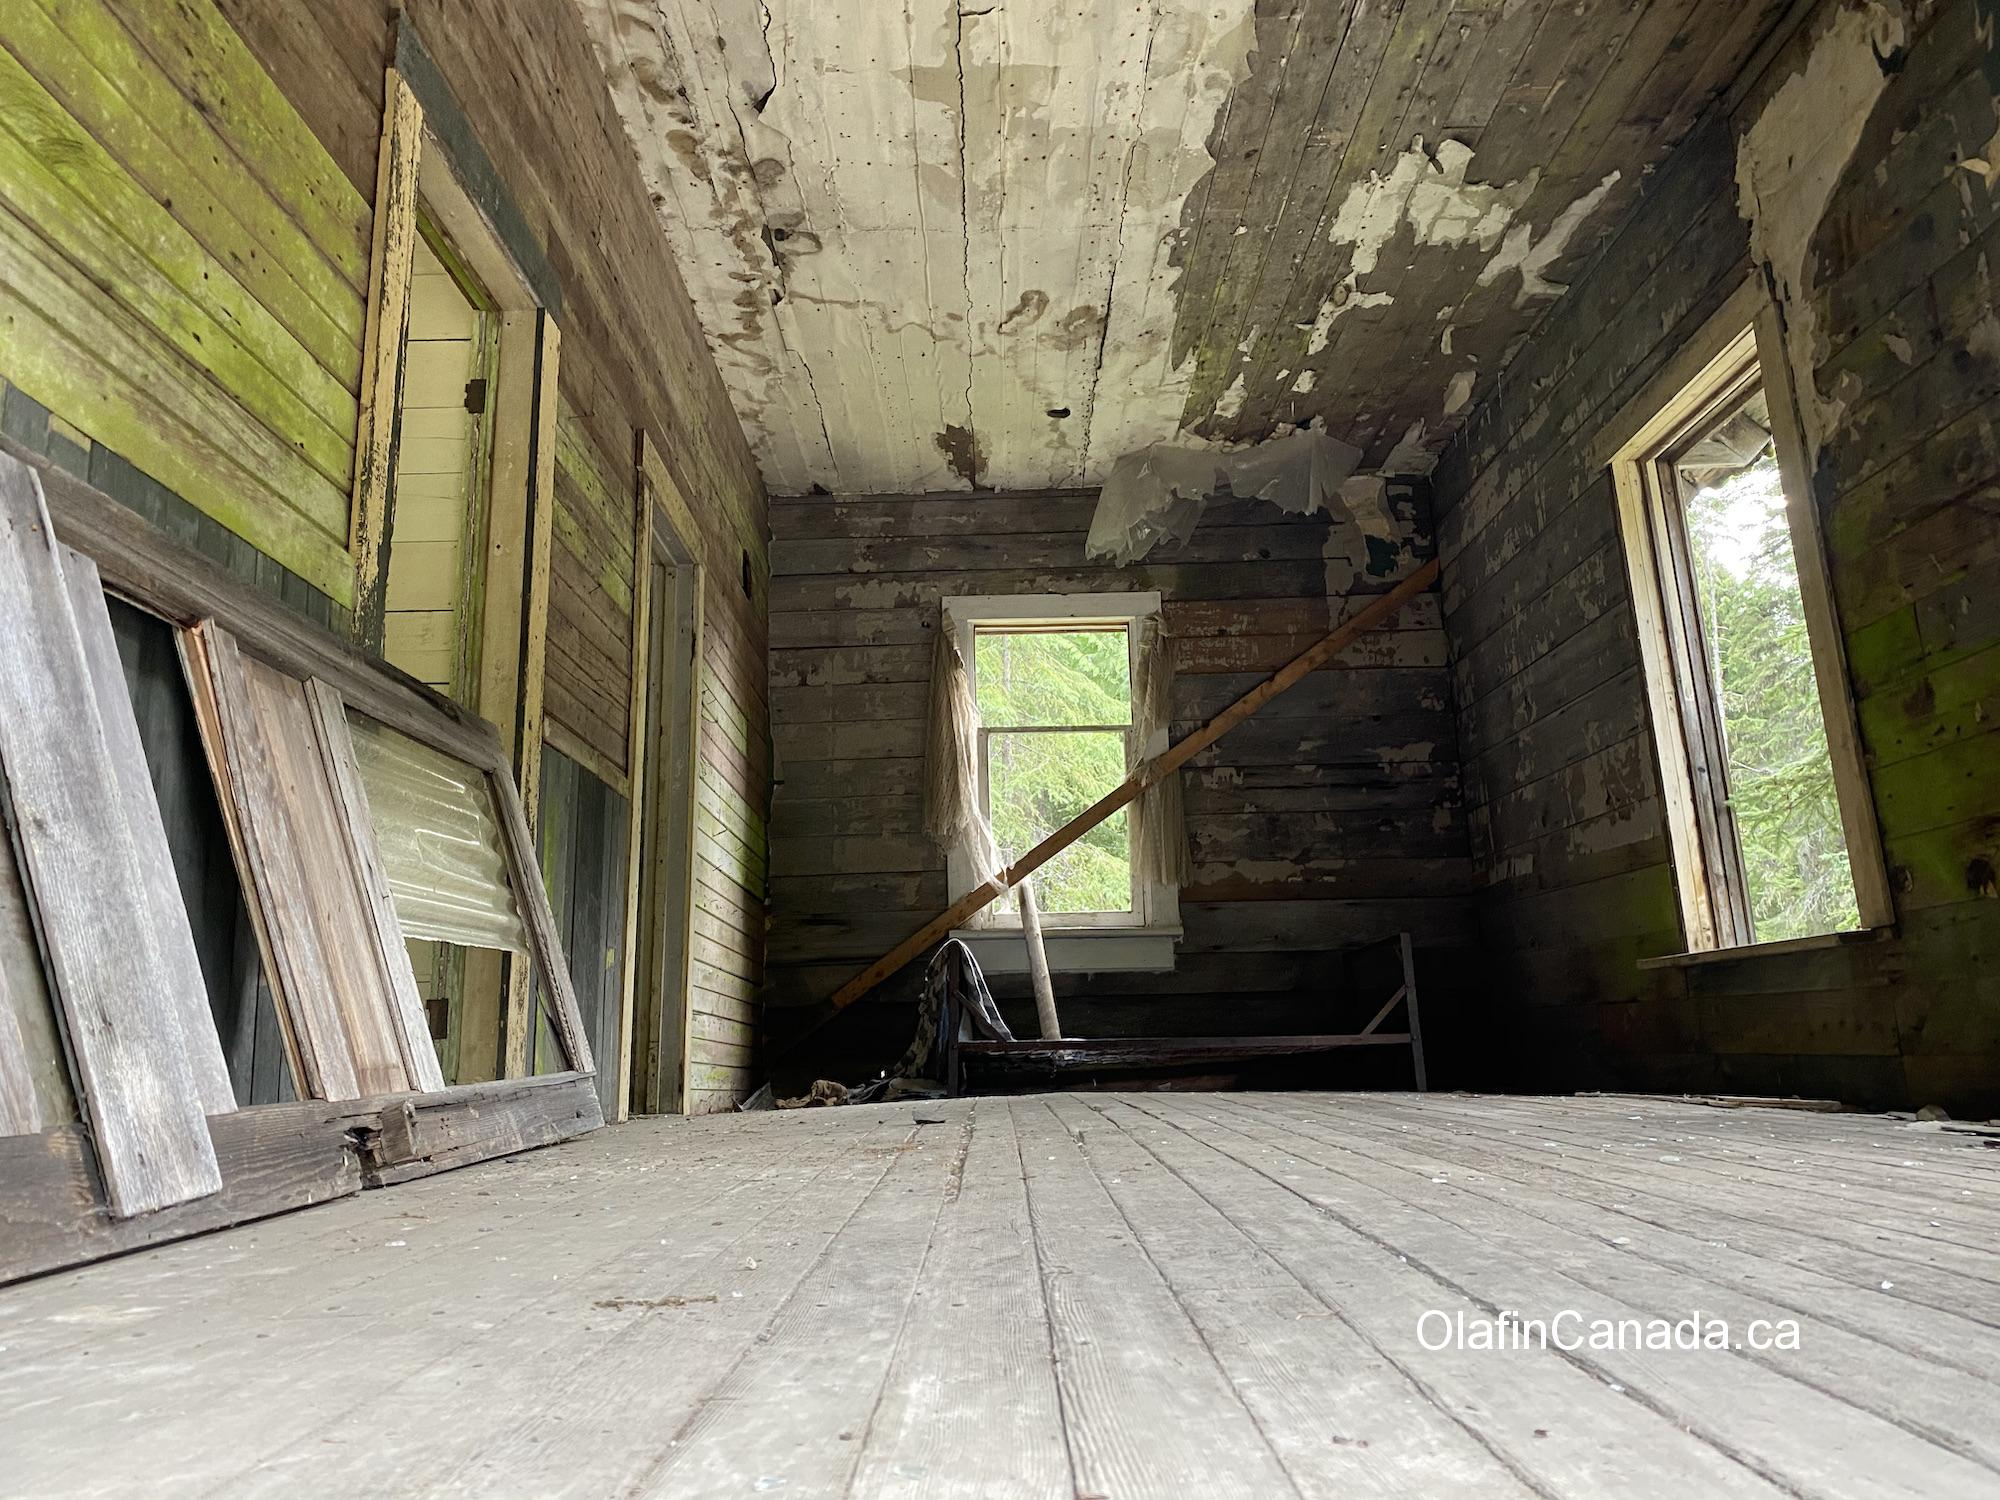 Bedroom in the station house, seen from the floor #olafincanada #britishcolumbia #discoverbc #abandonedbc #cody